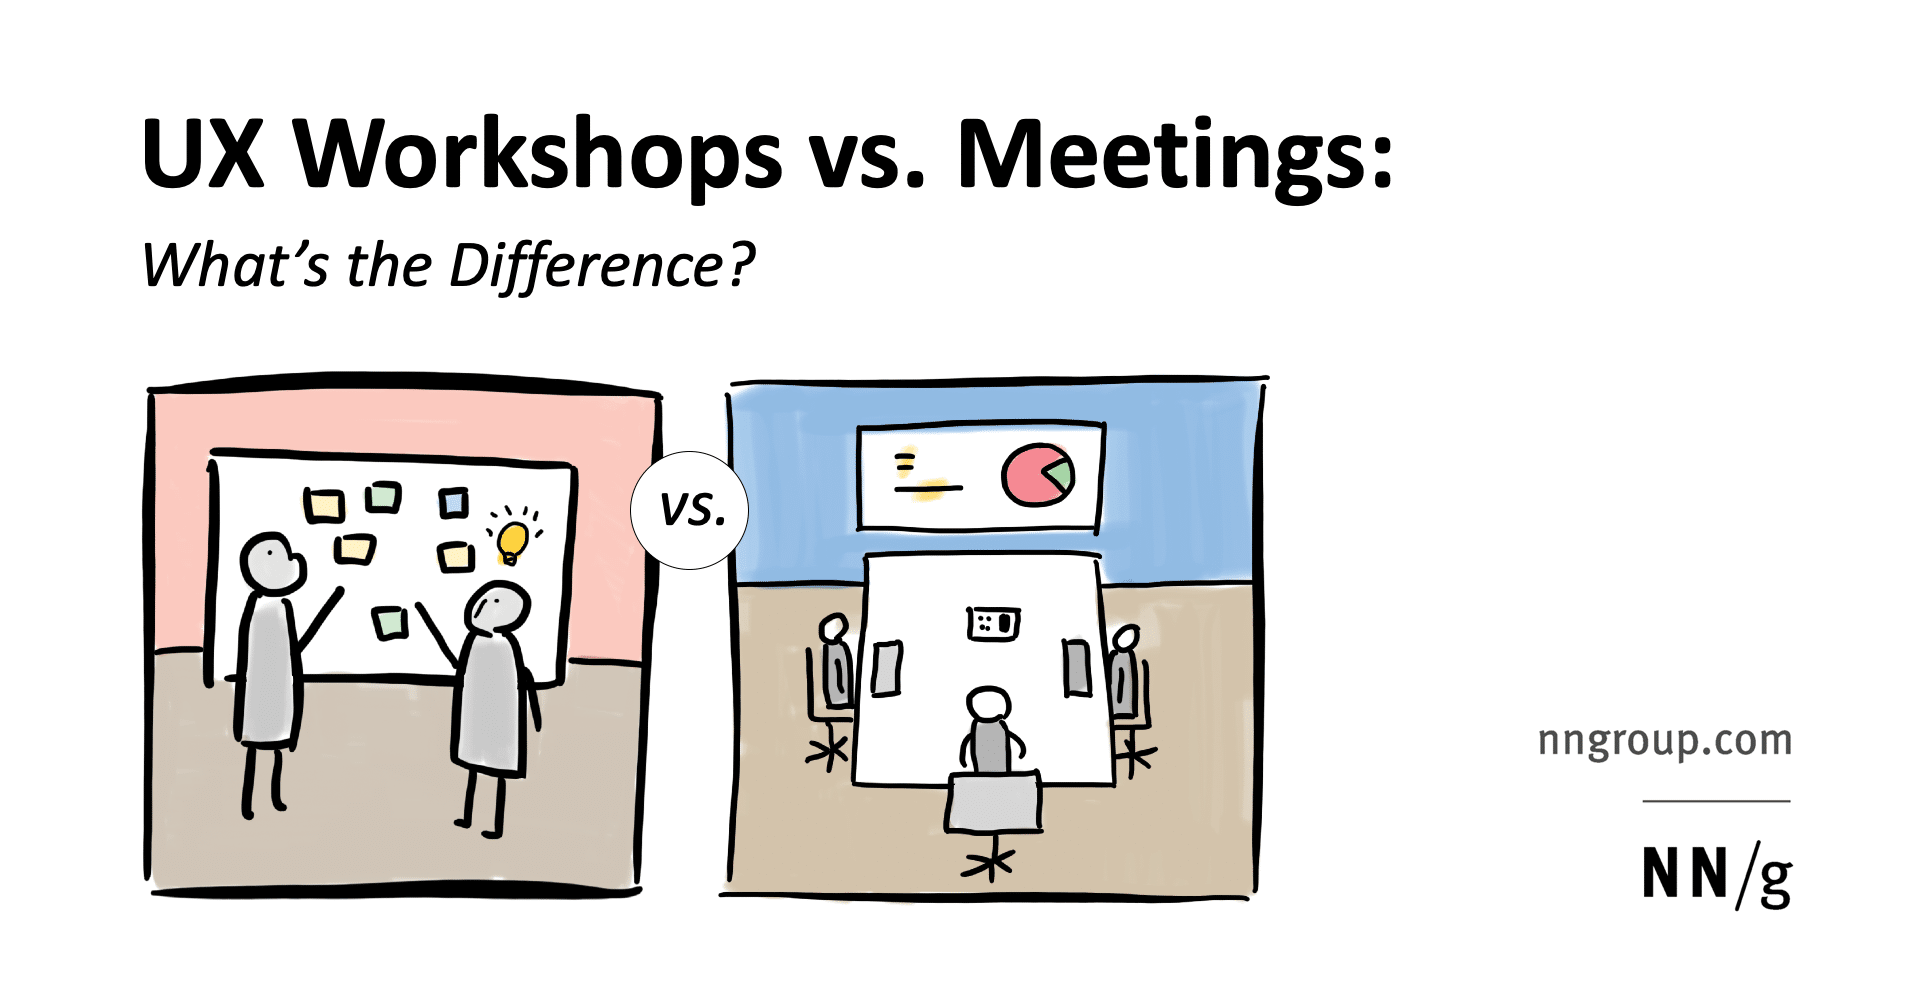 UX Workshops vs. Meetings: What's the Difference?